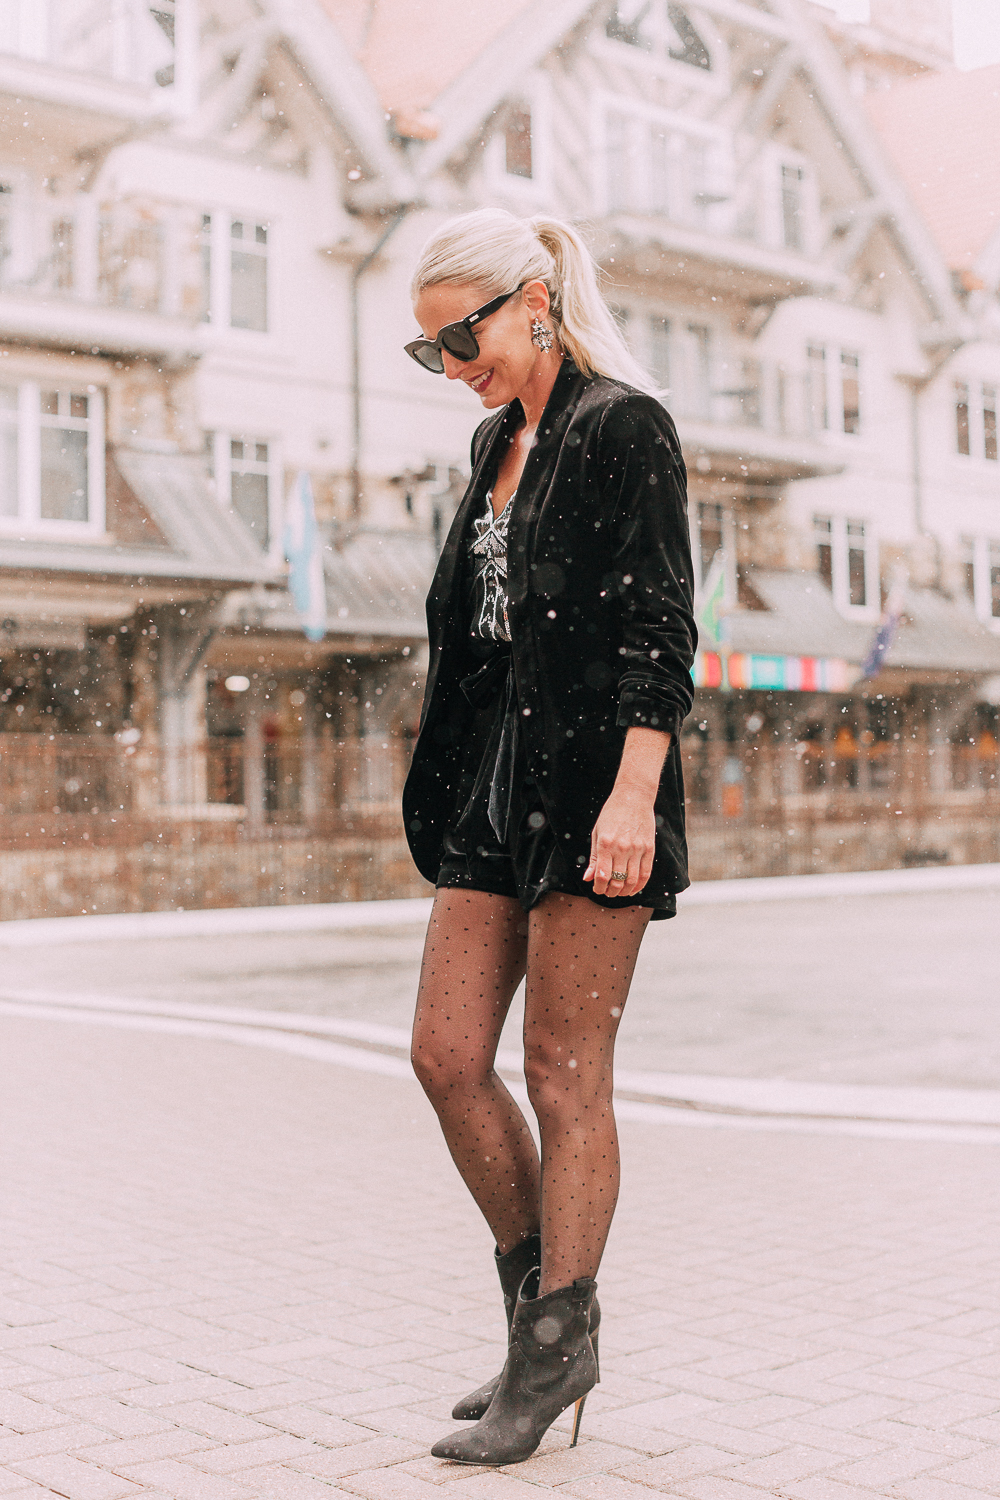 Unexpected holiday party outfits featuring a velvet Shorts suit from Express paired with Western black booties, and polka dot black tights on fashion blogger with blonde hair